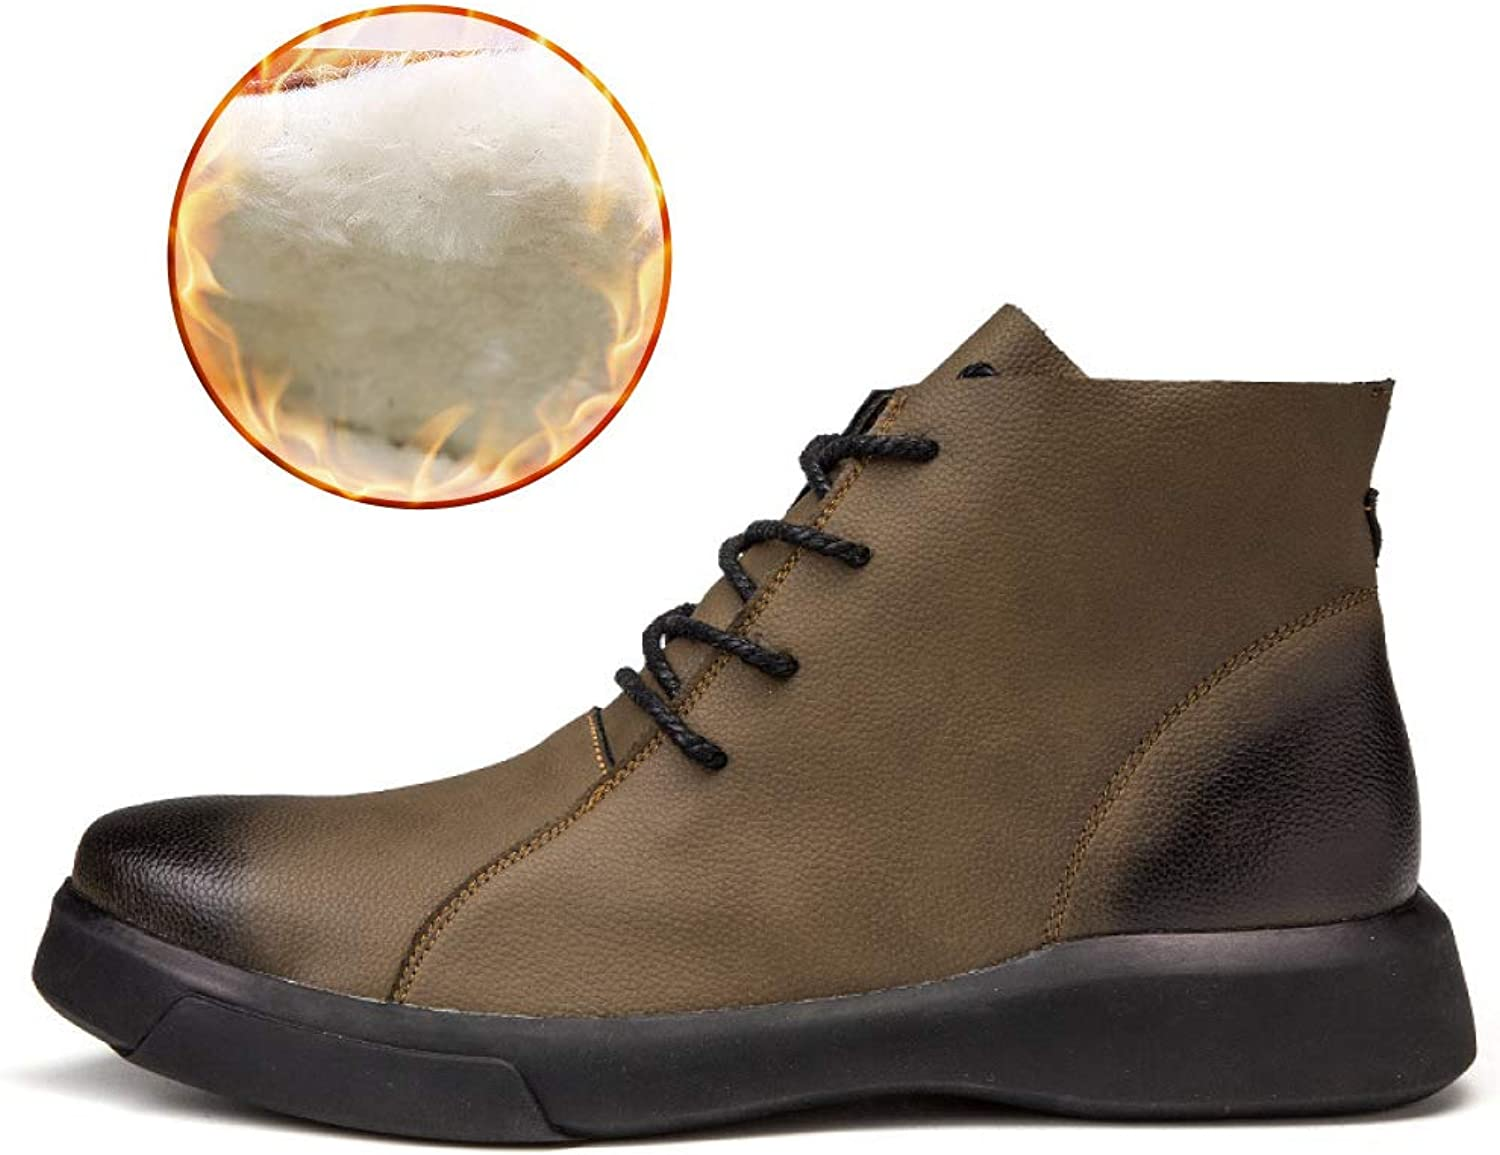 DZX Mens Winter Outdoor Casual Leather shoes British Style Lace Up Anti-Slip Luxurious Leather shoes - For Work And Walking,Khaki-44